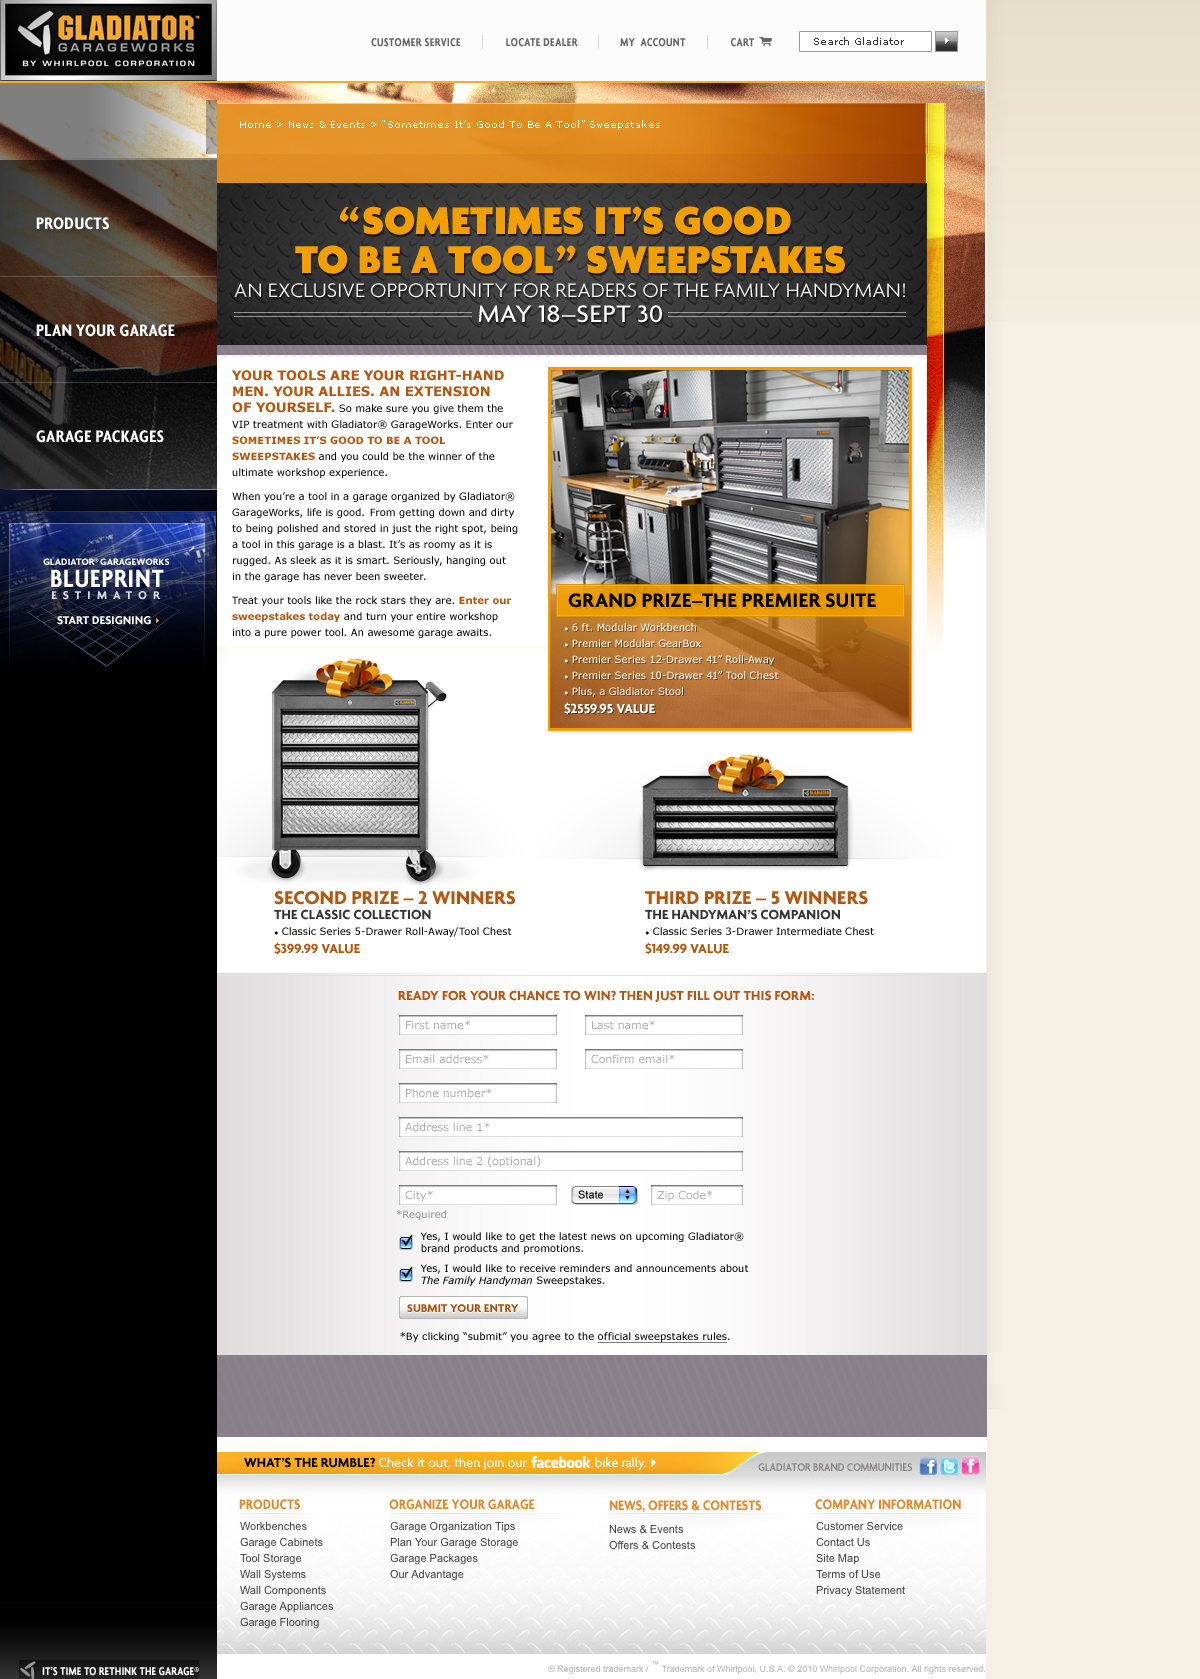 Gladiator garageworks website of bannonpuckett family handyman sweepstakes malvernweather Images